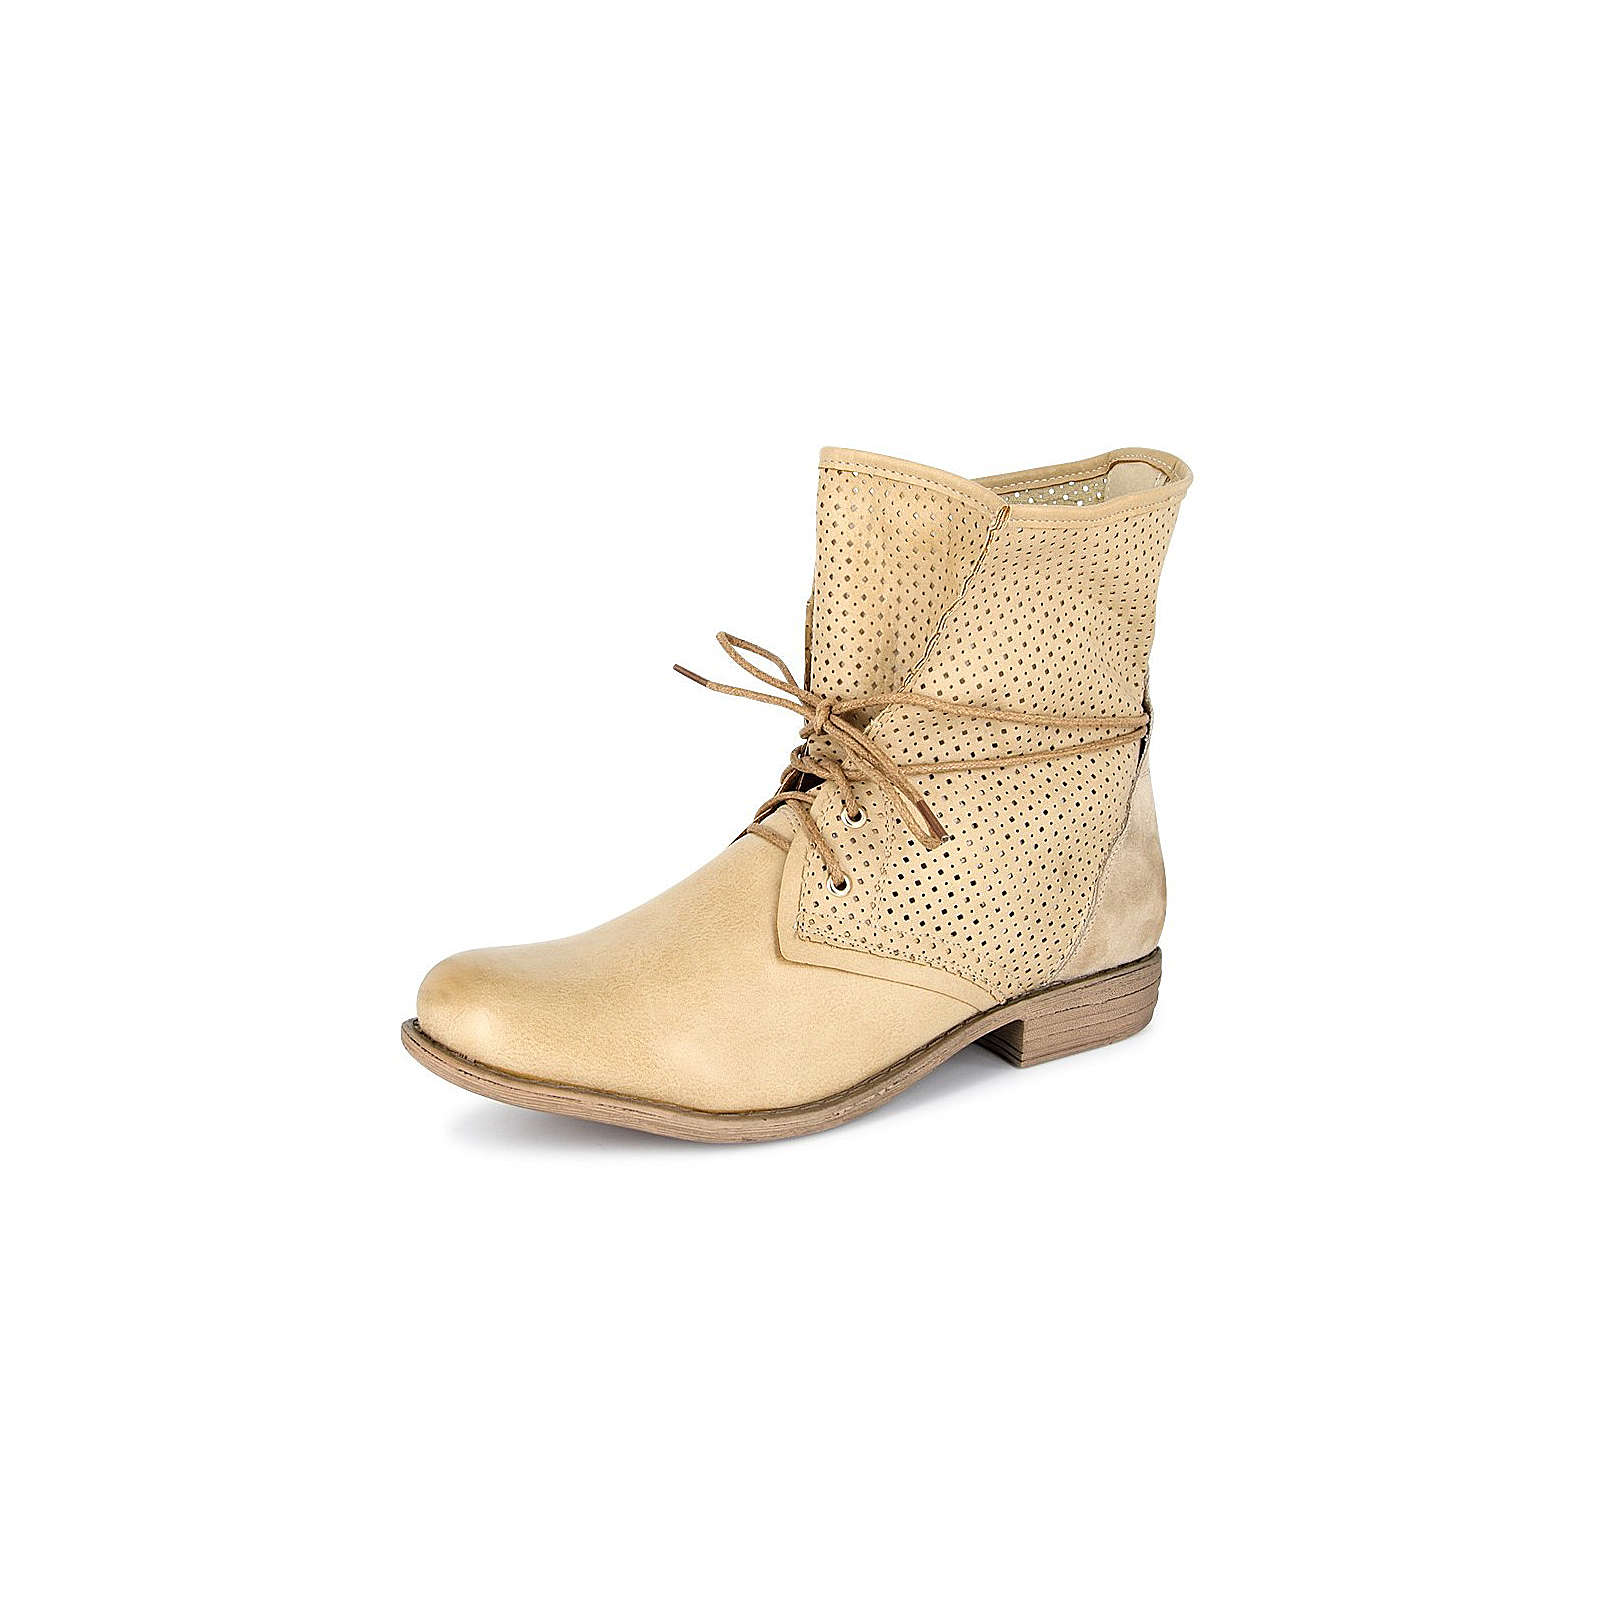 Fitters Footwear That Fits Stiefelette Mia Ankle Boots beige Damen Gr. 43